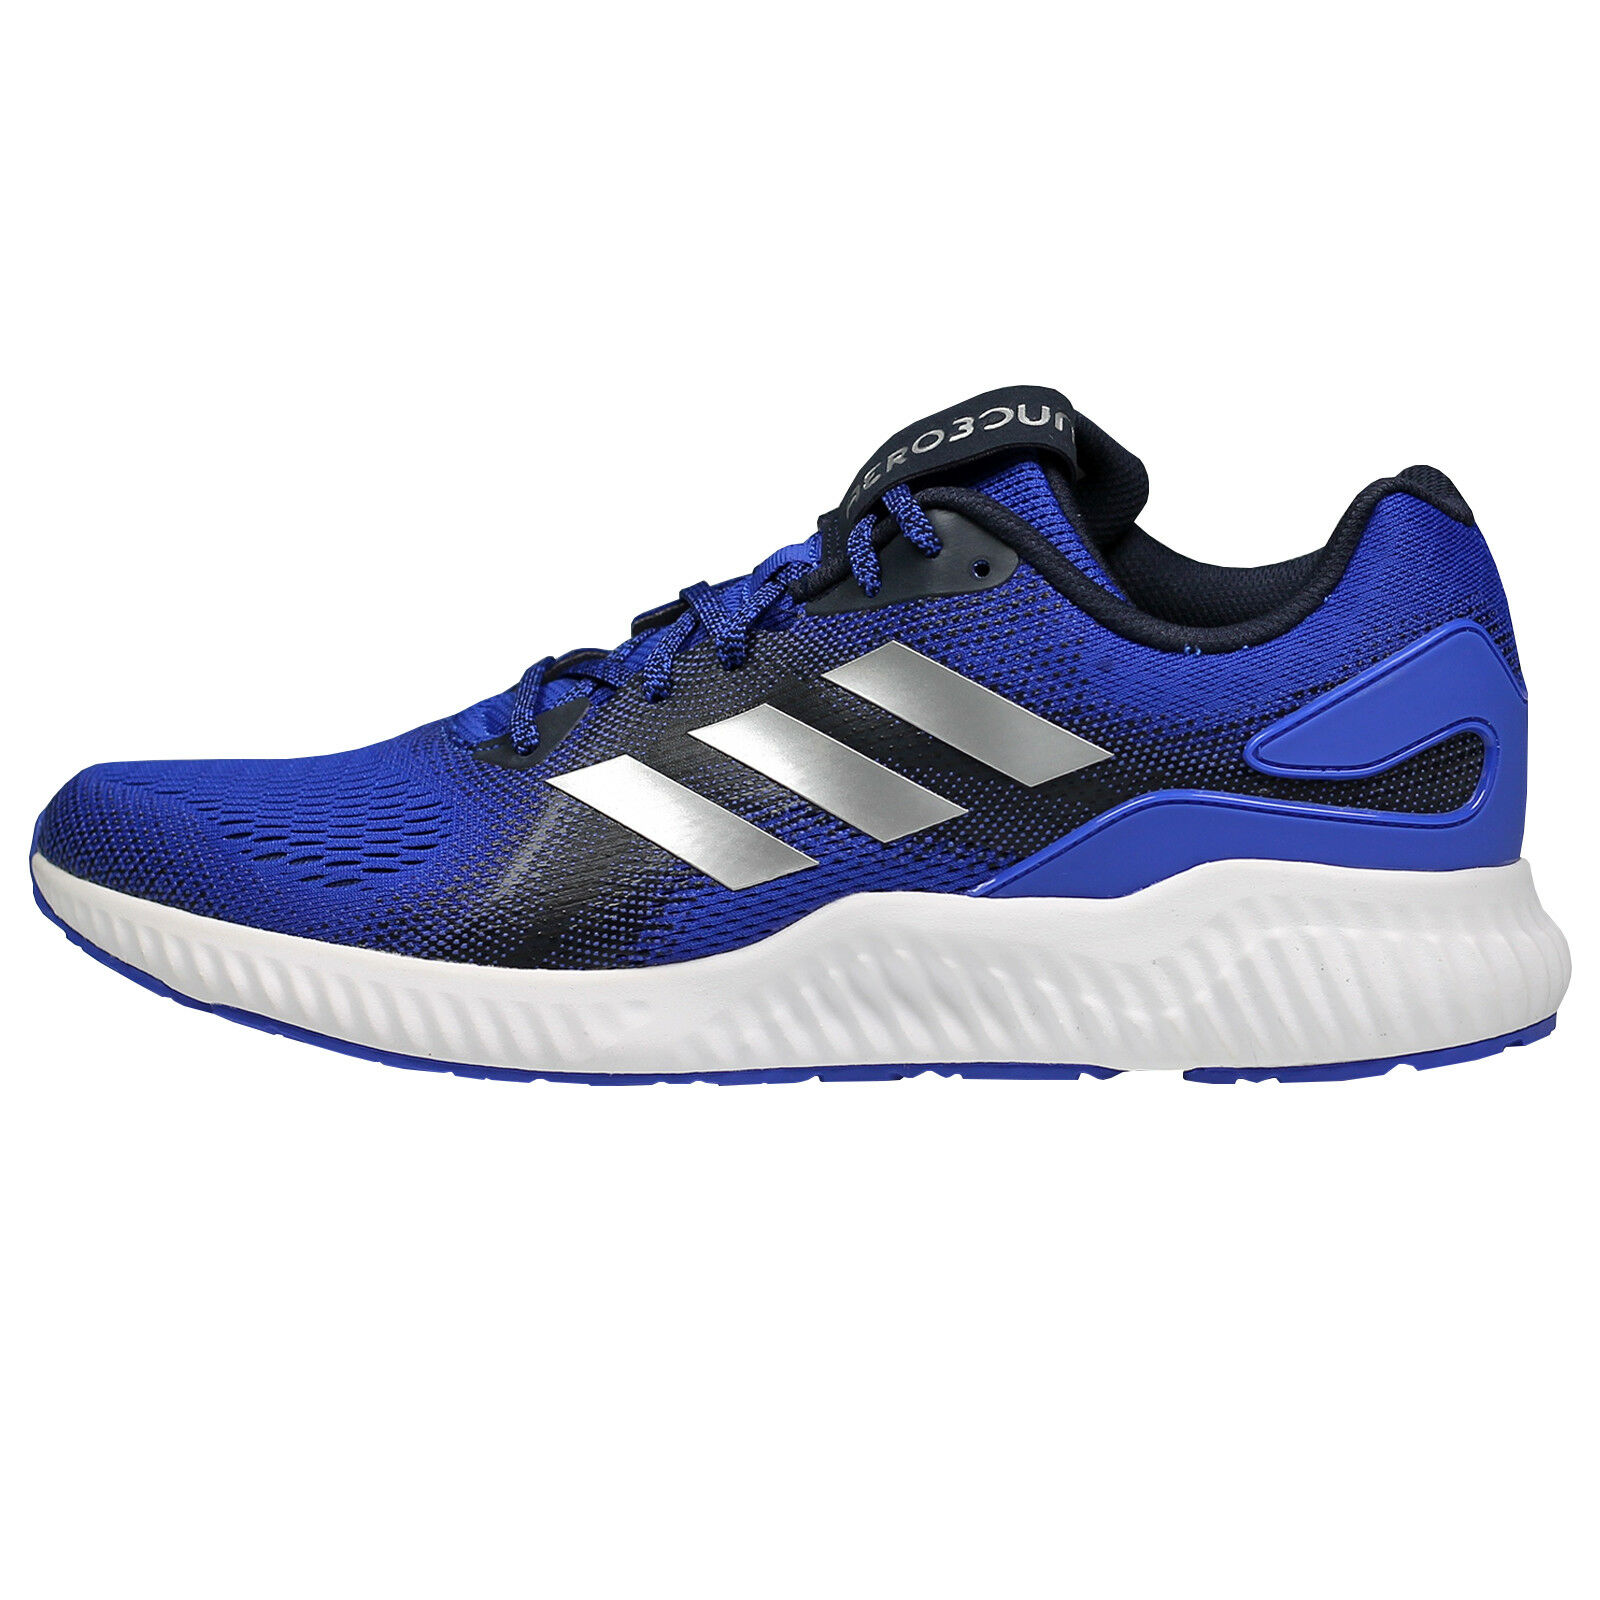 Adidas Aerobounce ST Men's Sneakers CG4615 - Blue, Silver, (NEW) Navy (NEW) Silver, Lists@$120 4964f3